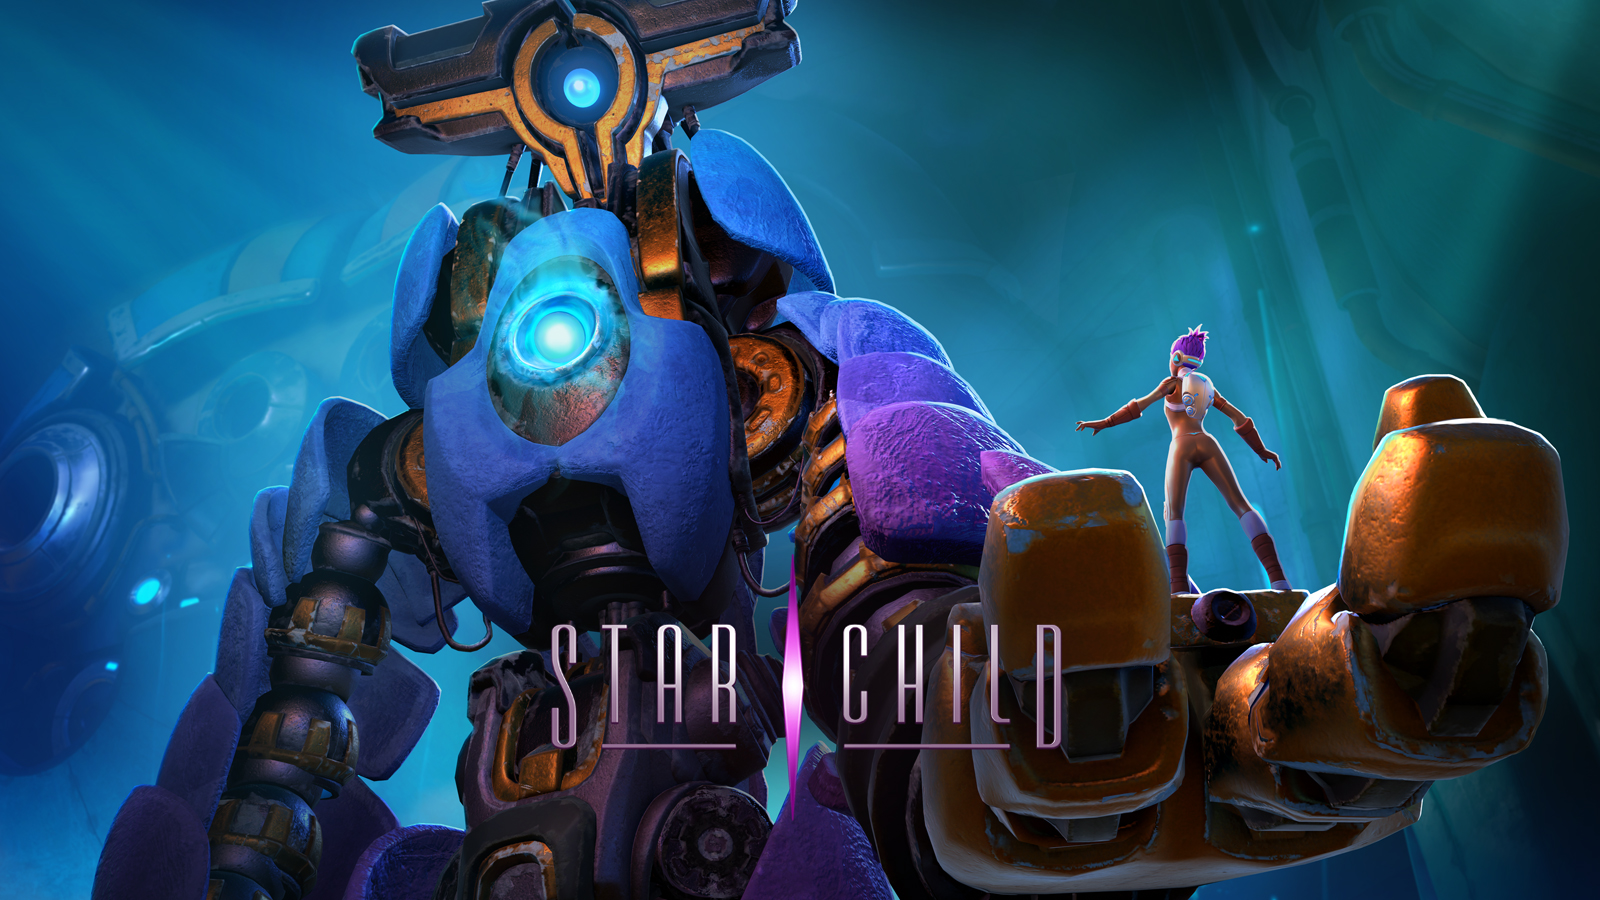 Star Child certainly seems like the kind of sci-fi IP that could be extended across media